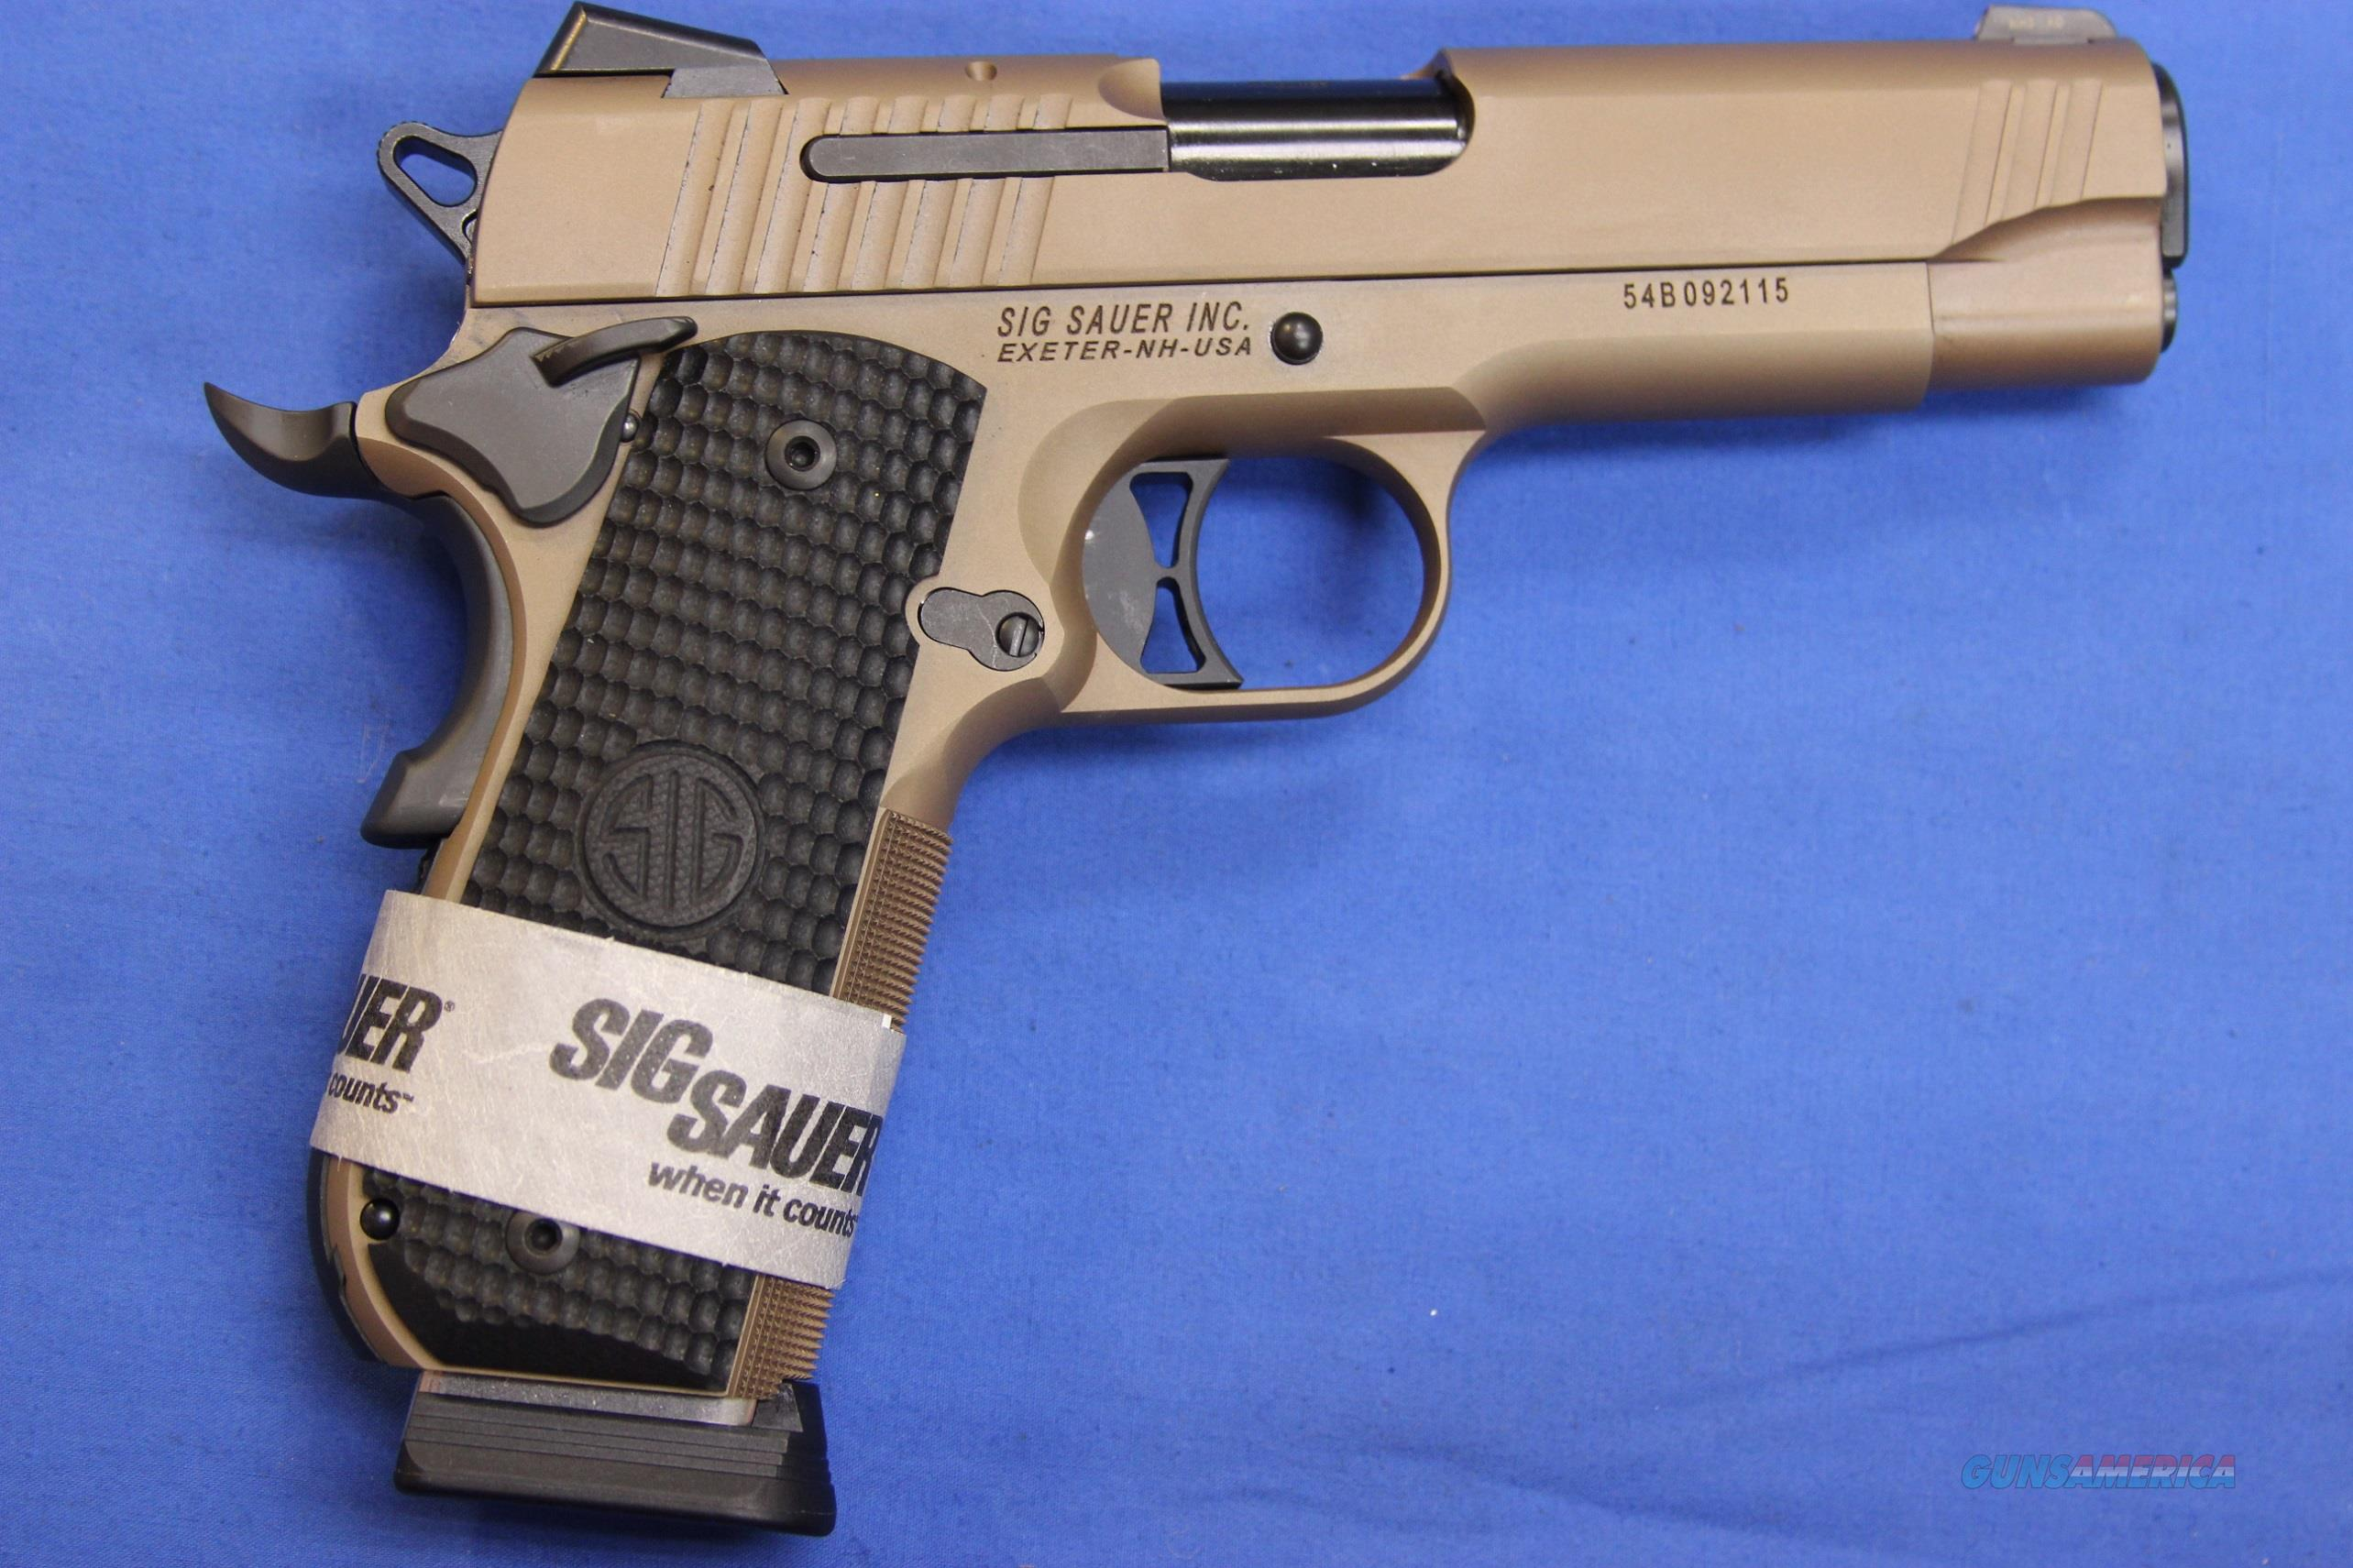 SIG 1911 FASTBACK CARRY EMPEROR SCORPION .45 ACP - NEW!  Guns > Pistols > Sig - Sauer/Sigarms Pistols > 1911